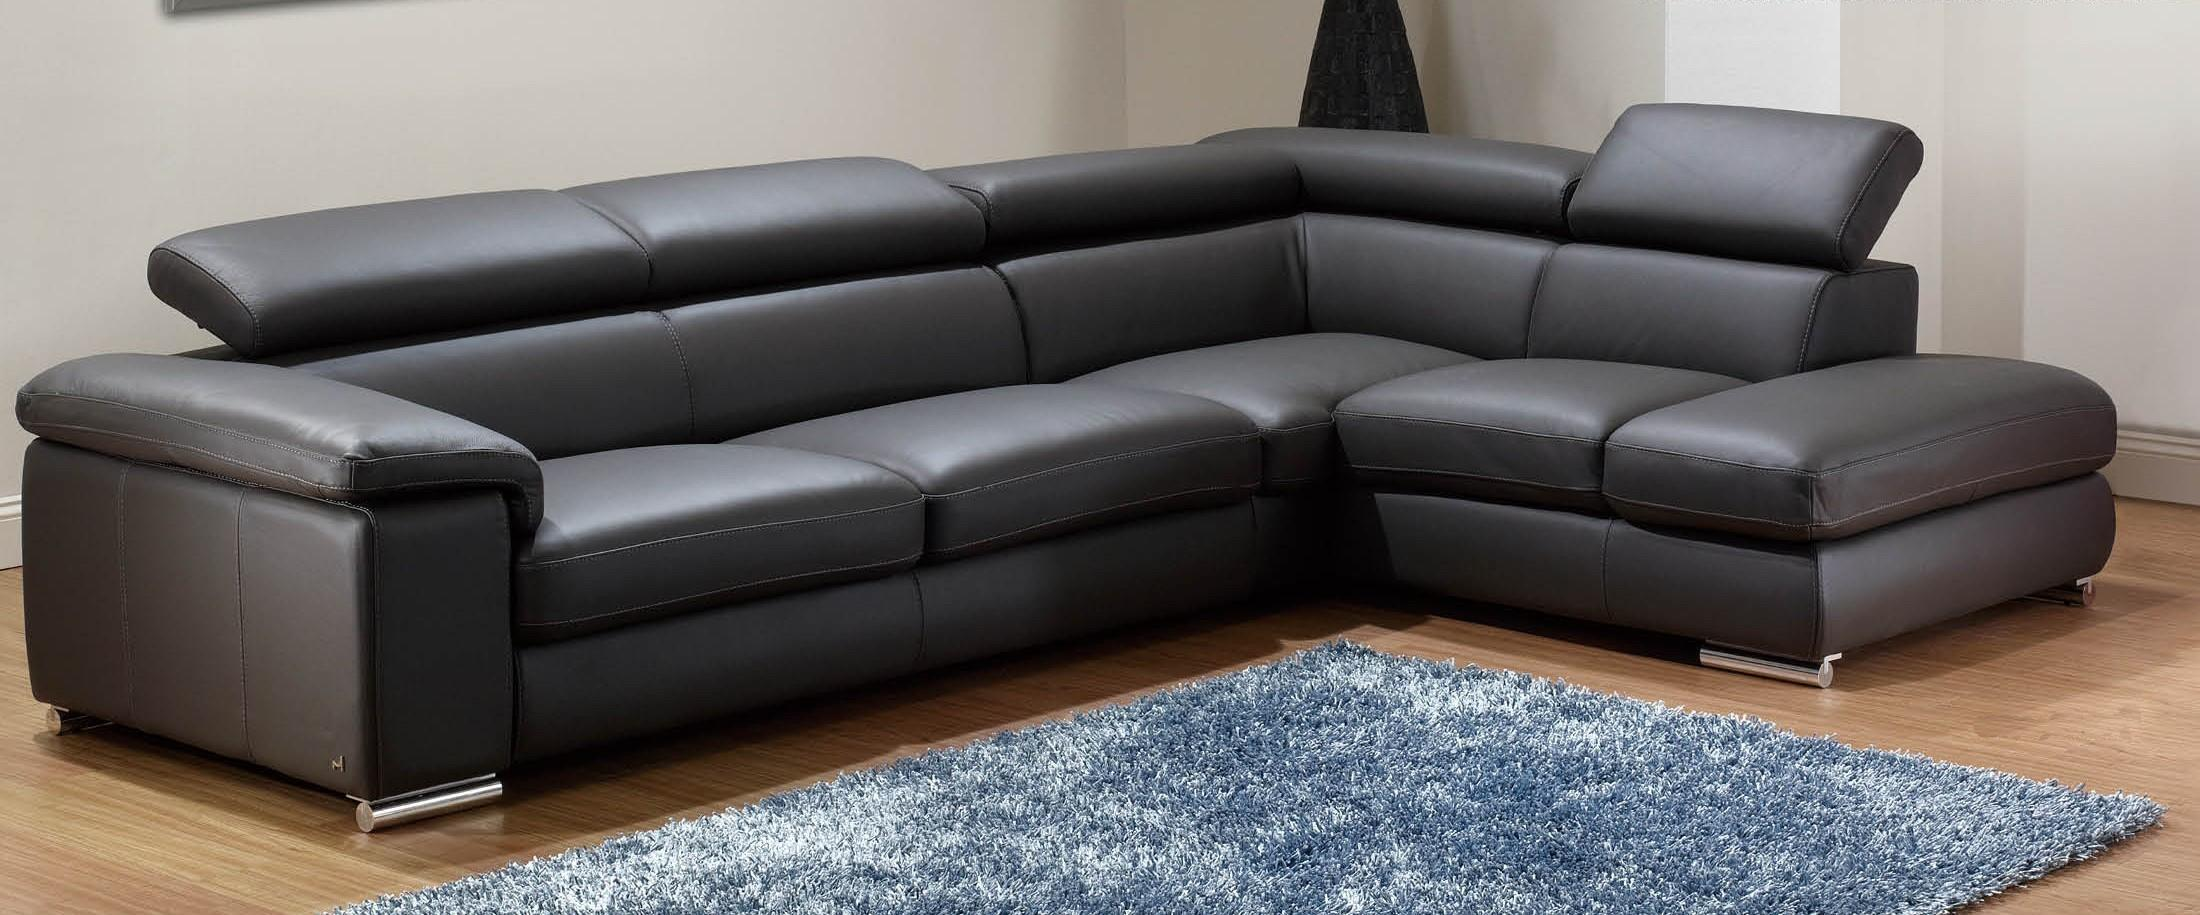 Modern Leather Sectional Sofa Best Sofas Ideas